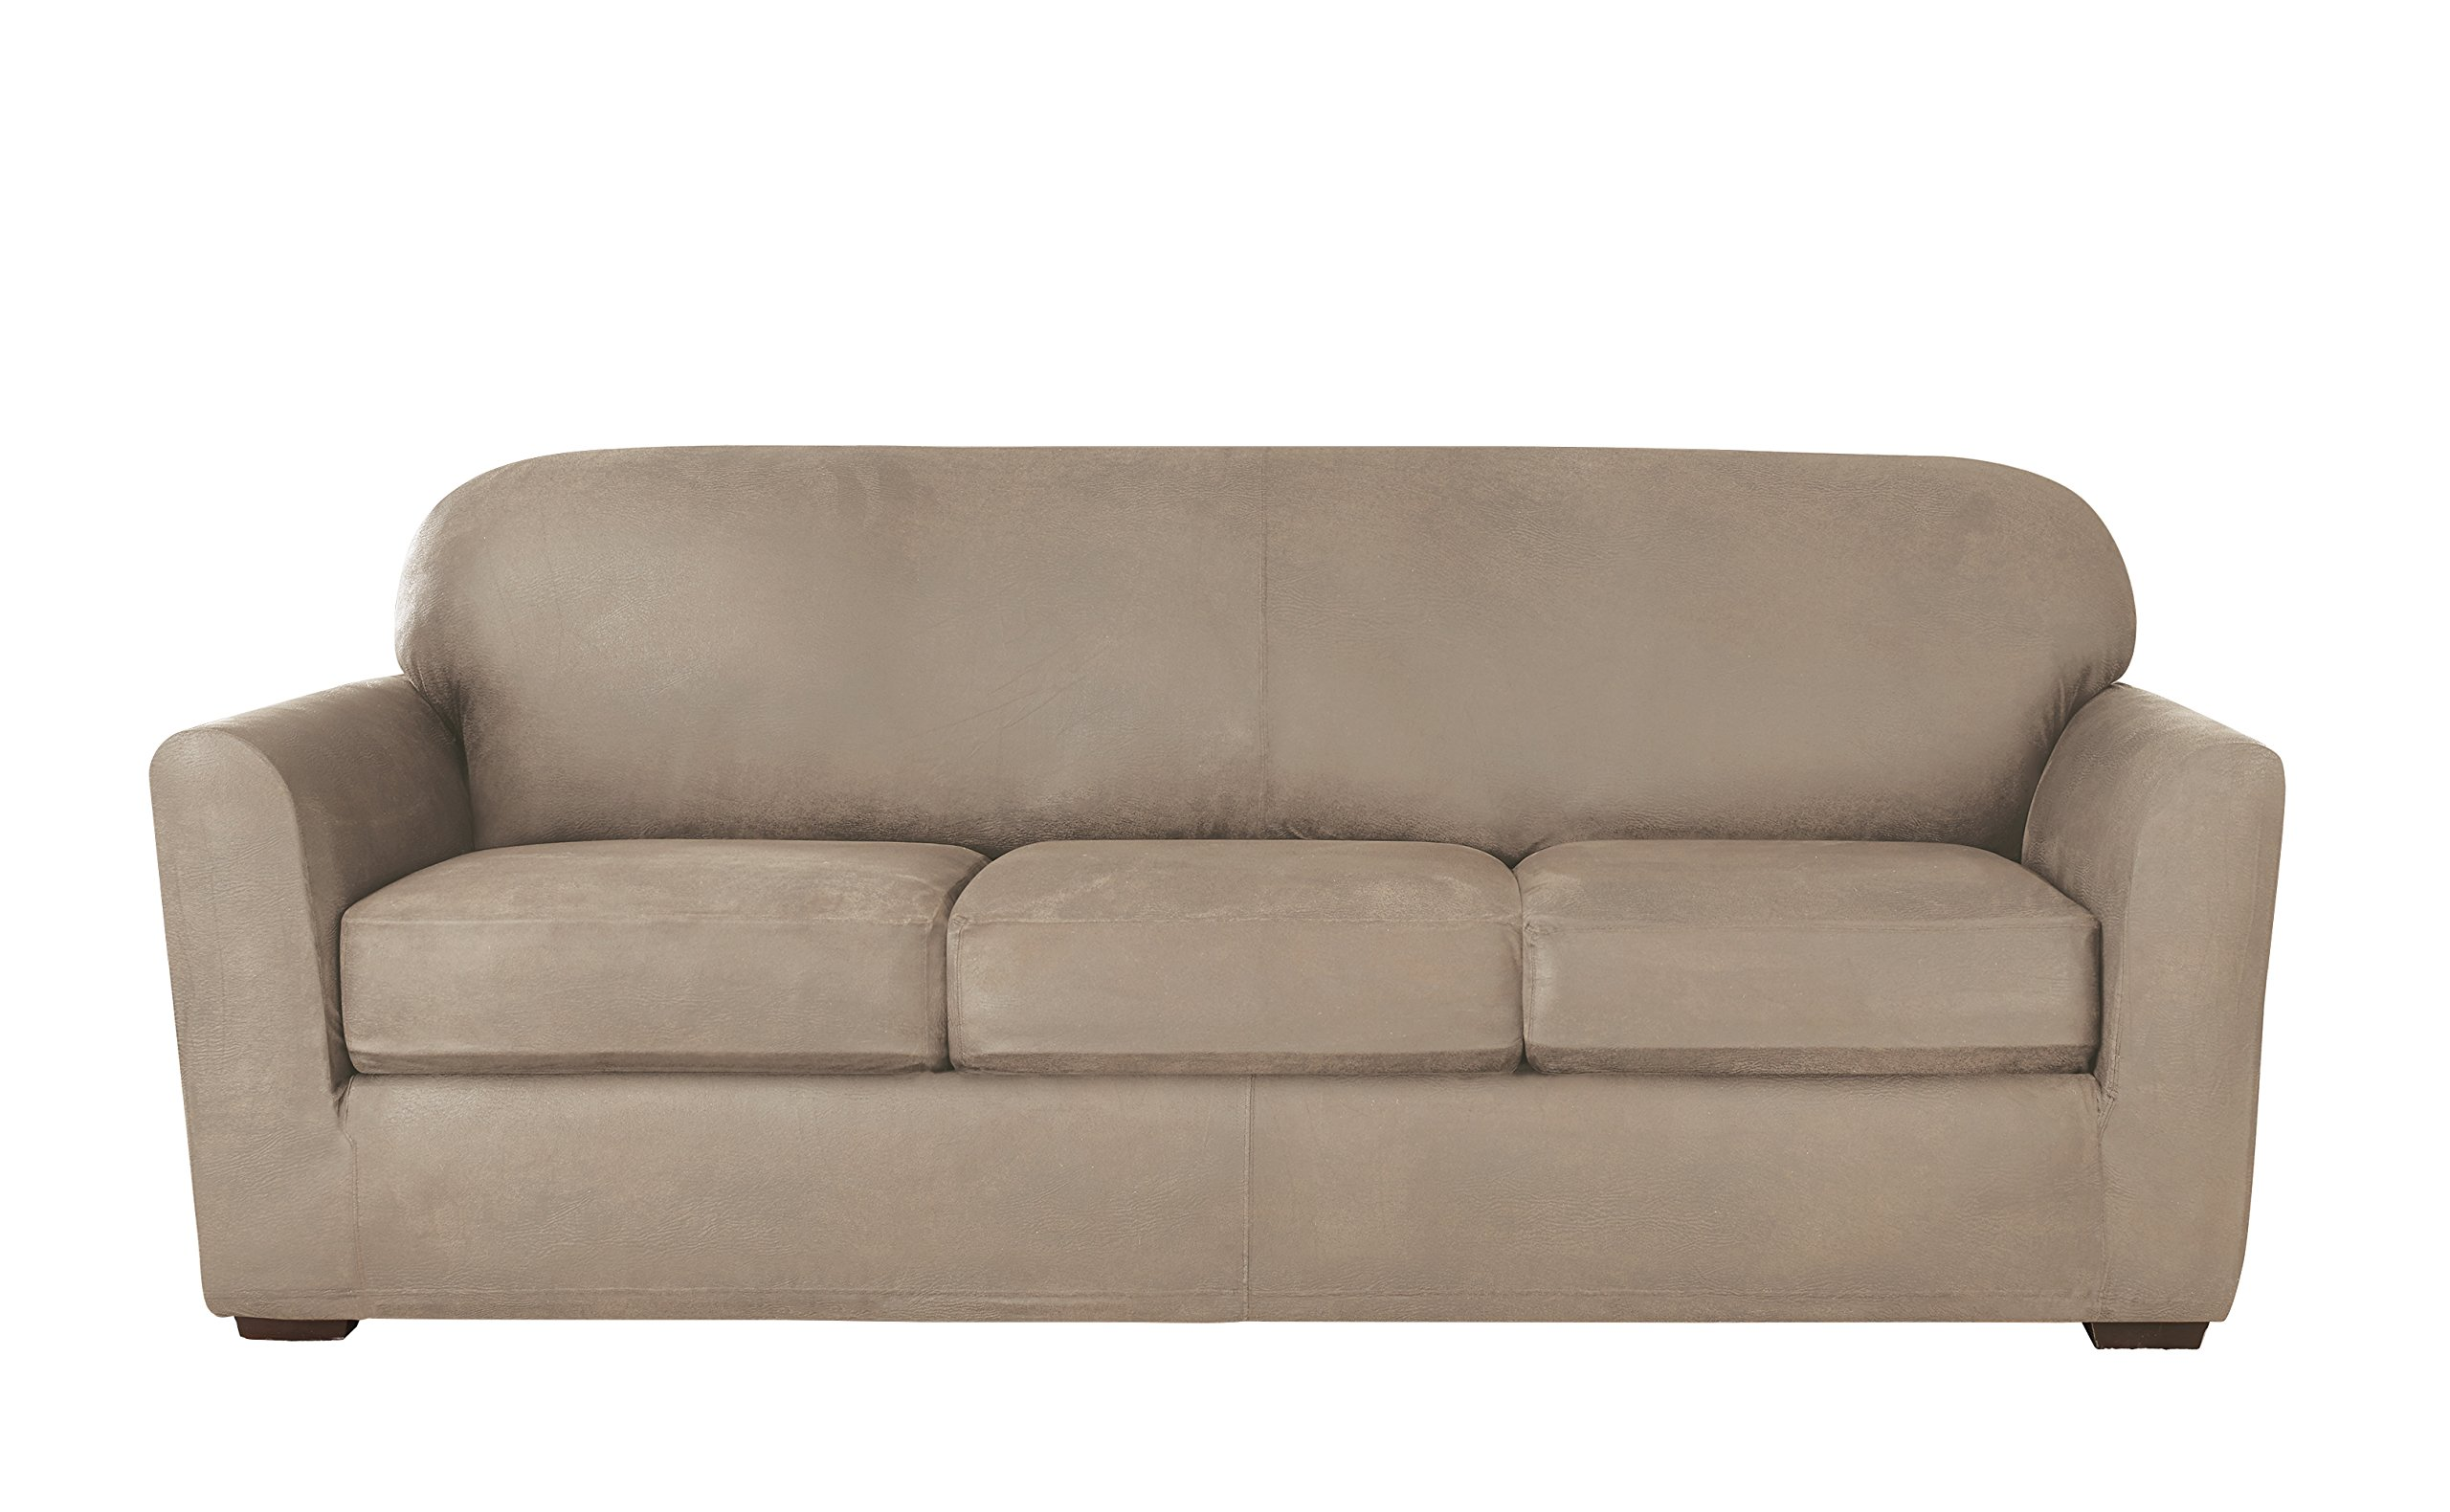 Sure Fit Ultimate Heavyweight Stretch Leather Individual 3 Cushion Sofa  Slipcover - Rustic Birch